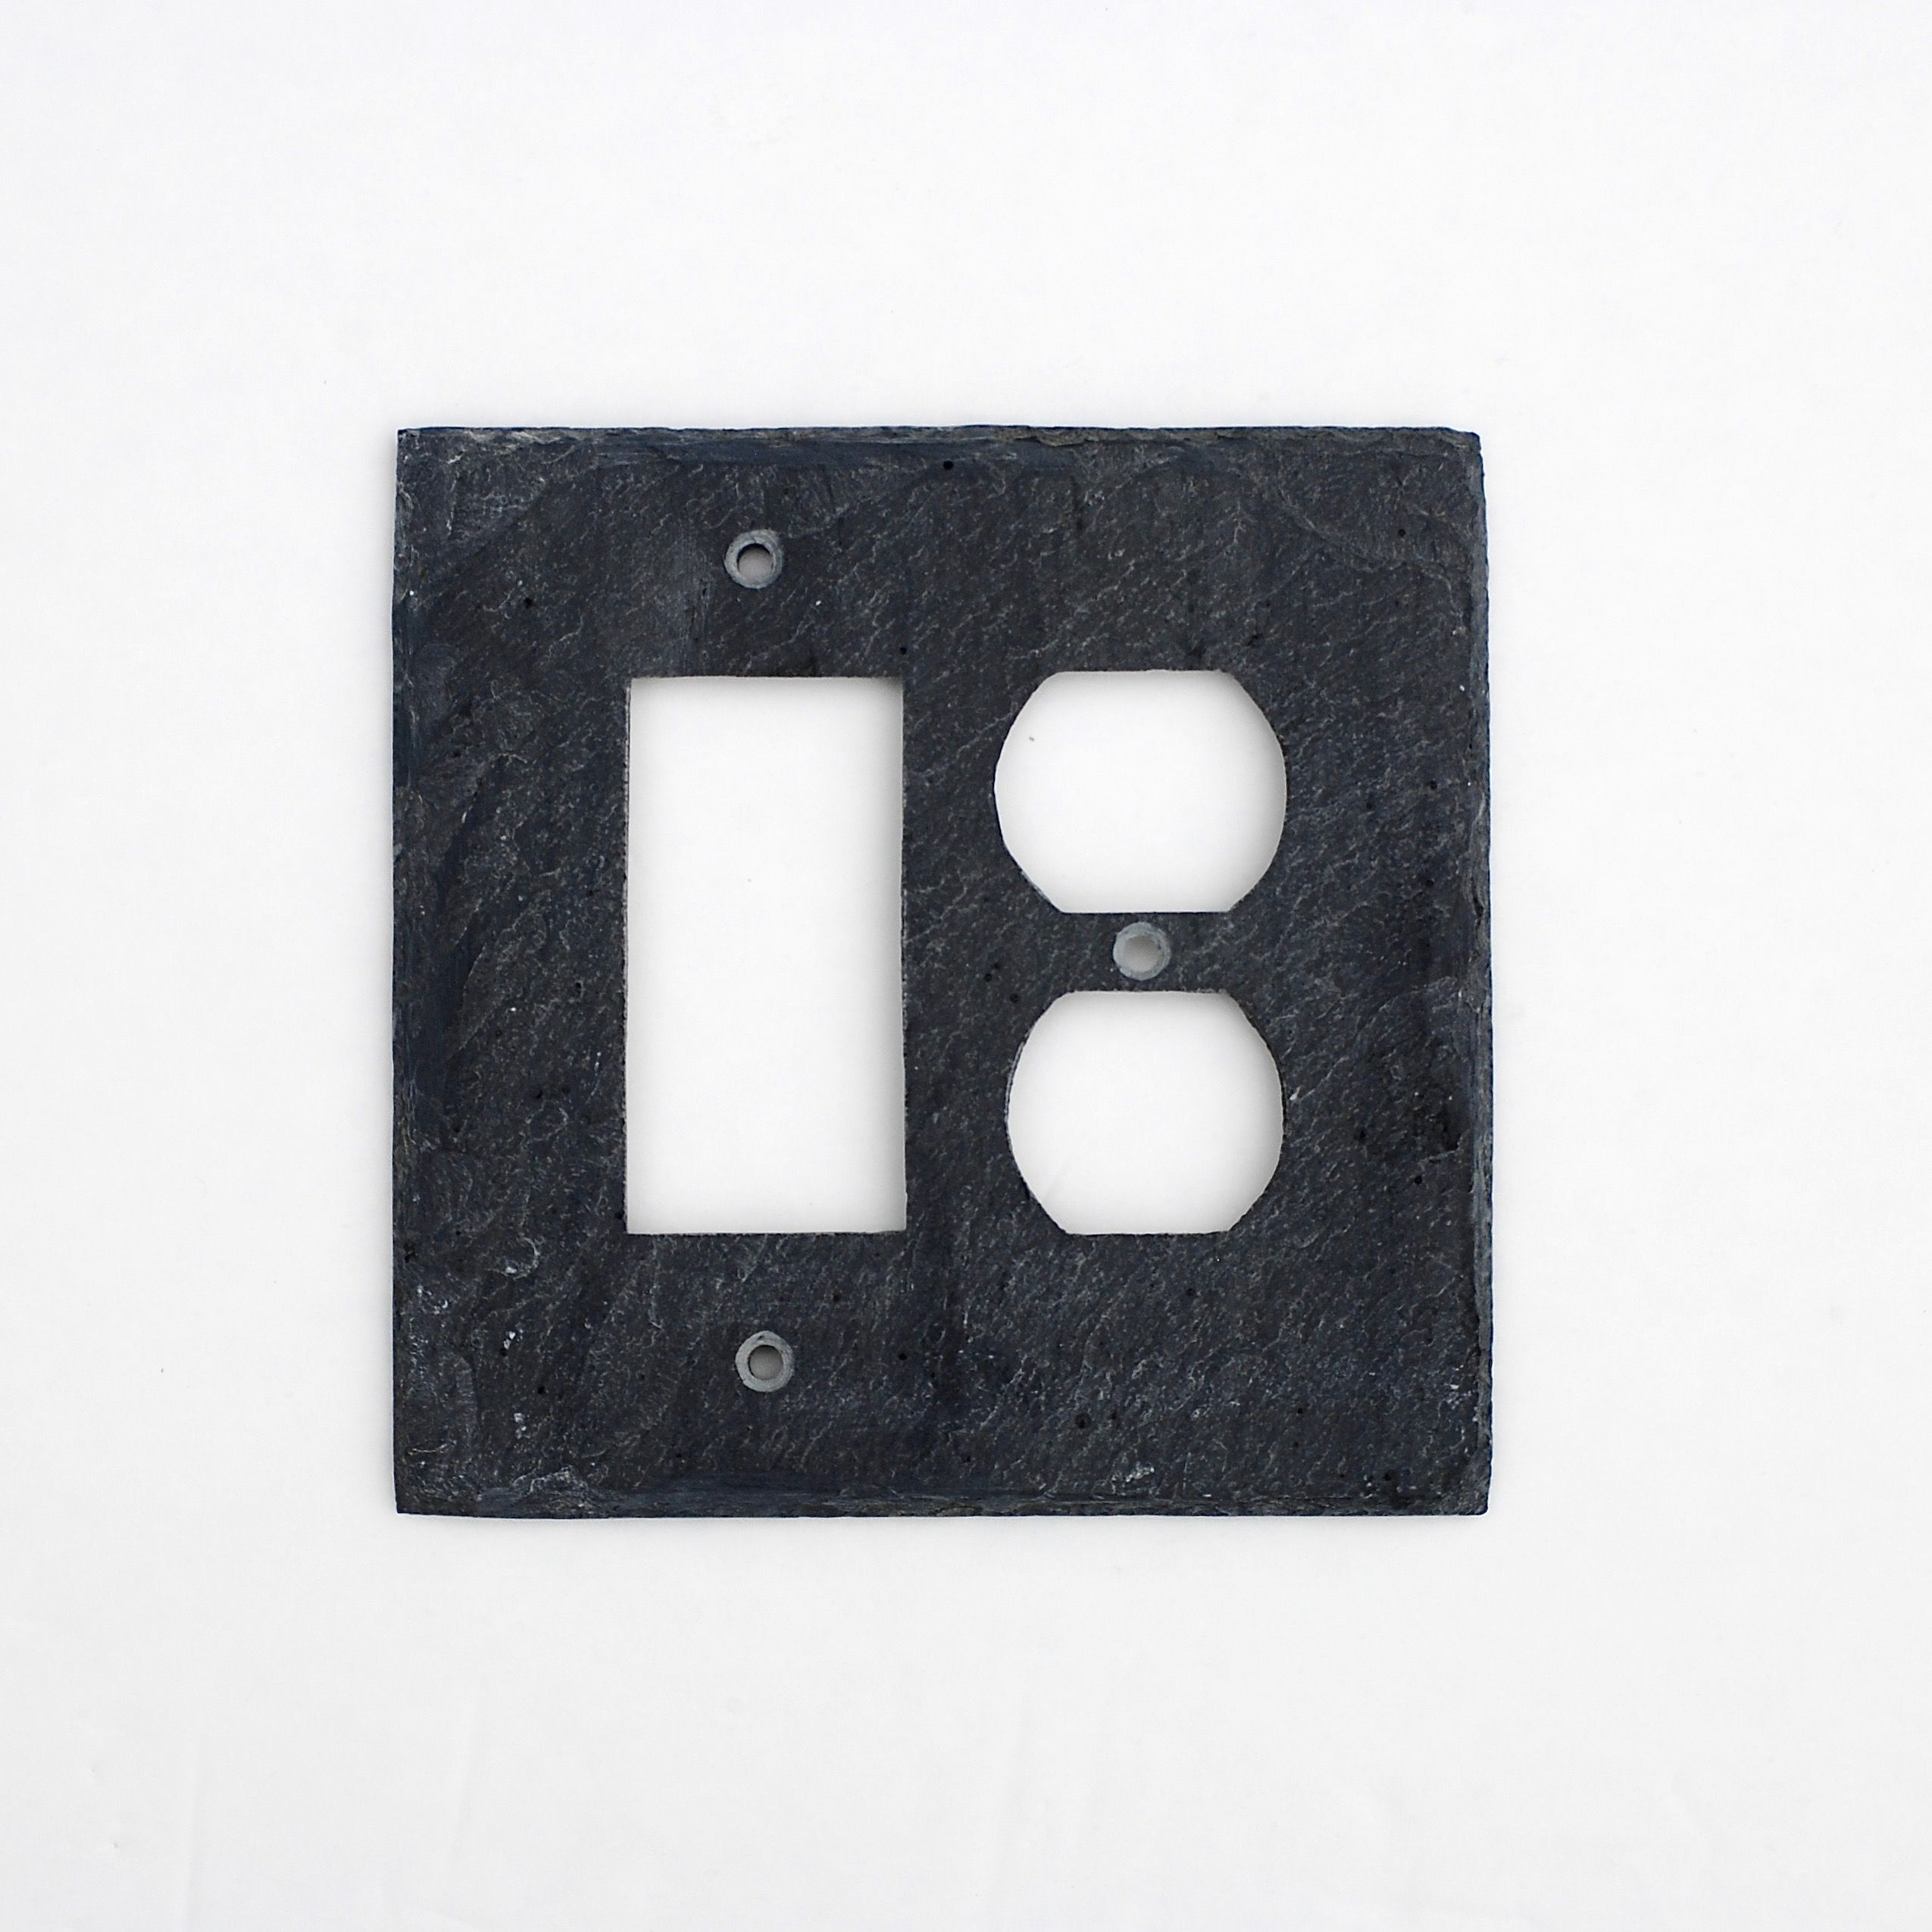 Outlet Switch Covers Decorative Light Switch Cover Stone Light Switch Cover